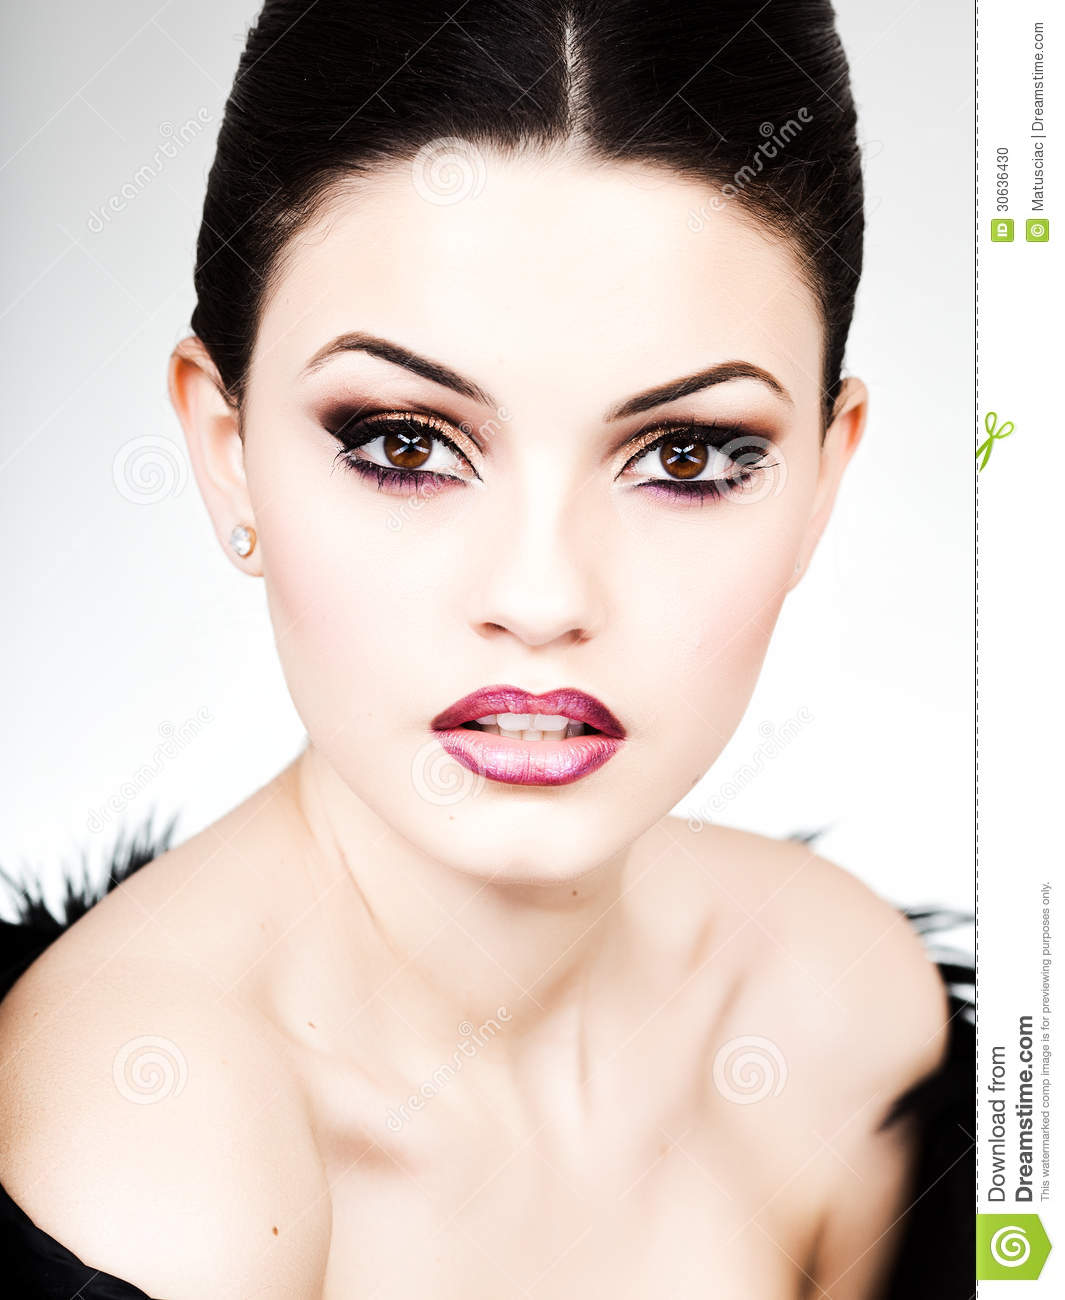 Professional make-up and hairstyle on beautiful woman face - beauty shot